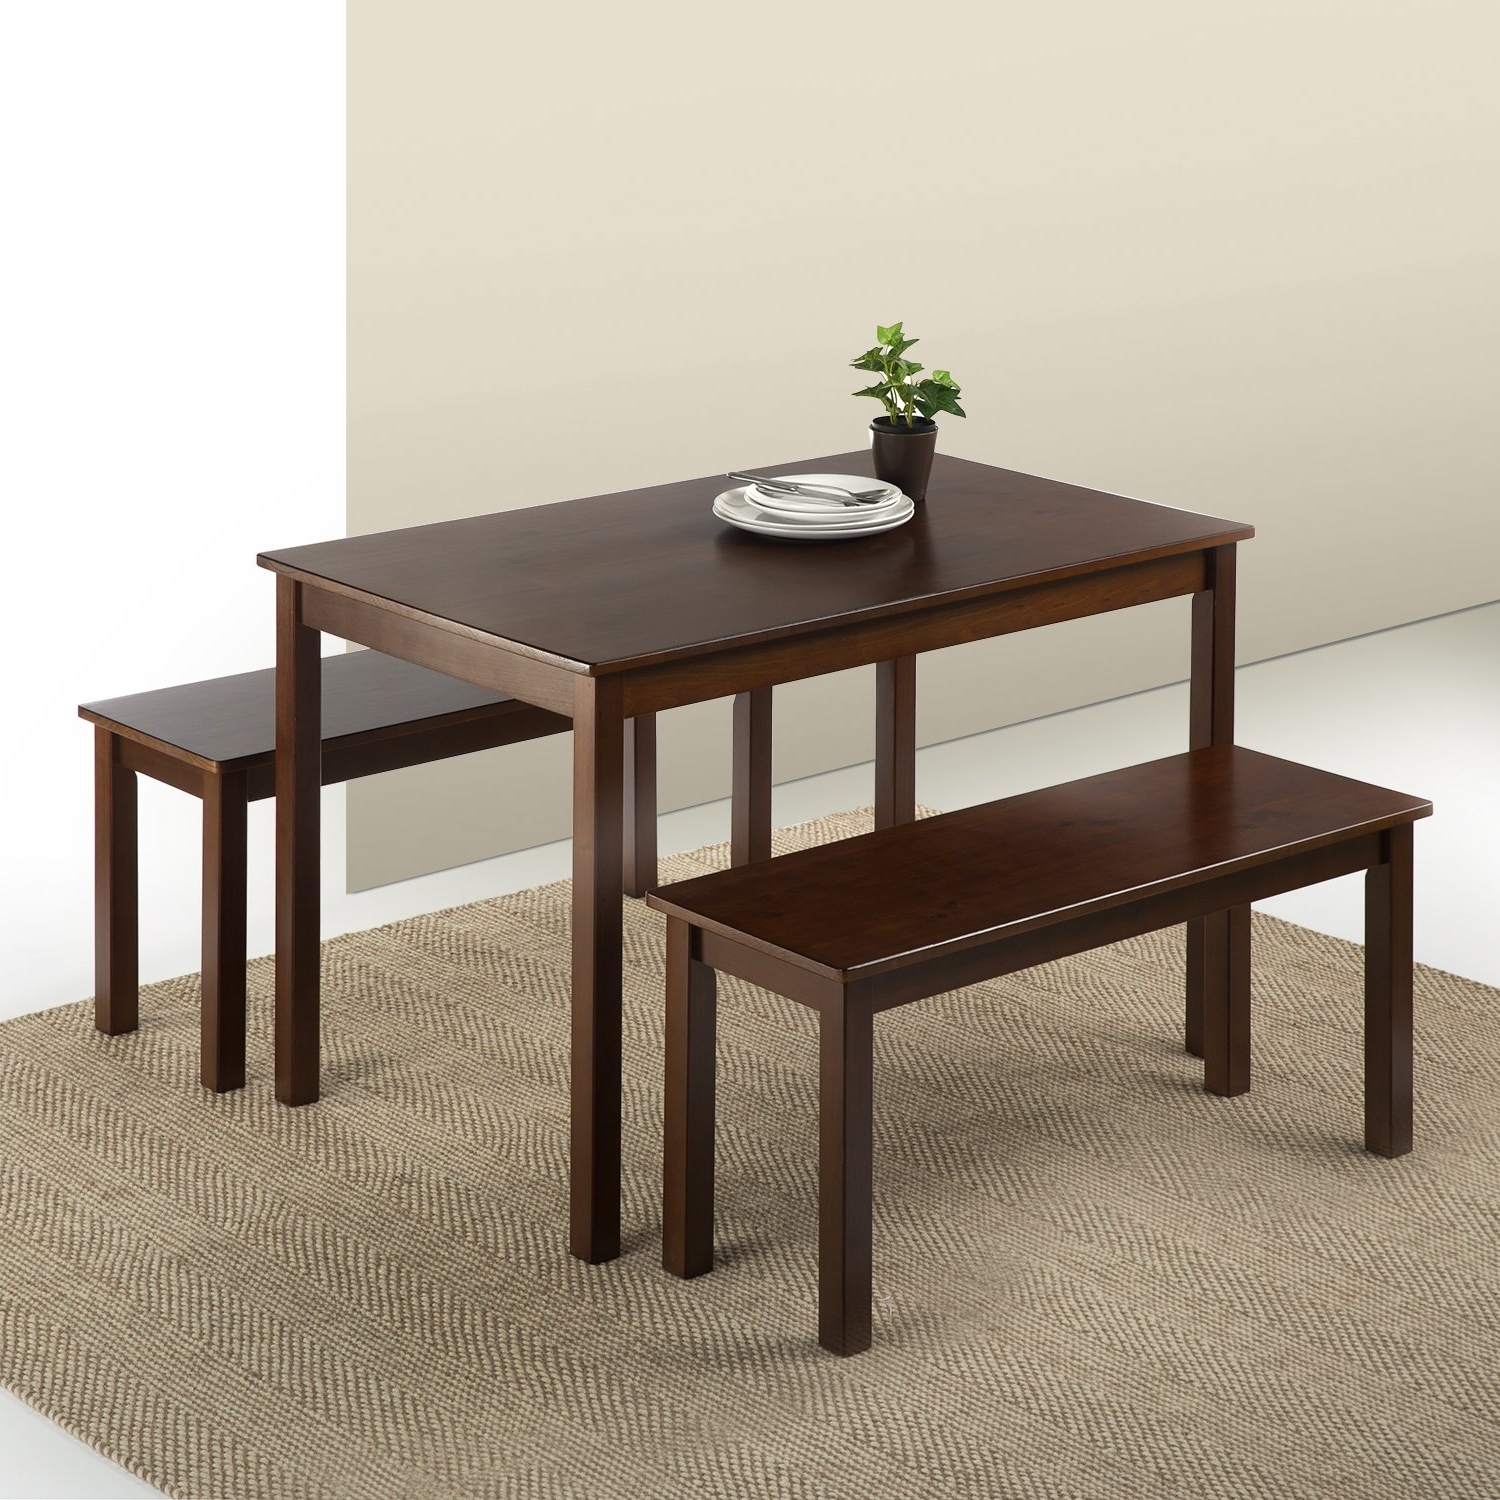 Most Popular Dining Tables And 2 Benches For Zinus Espresso Wood Dining Table With 2 Benches / 3 Piece Set New (View 16 of 25)